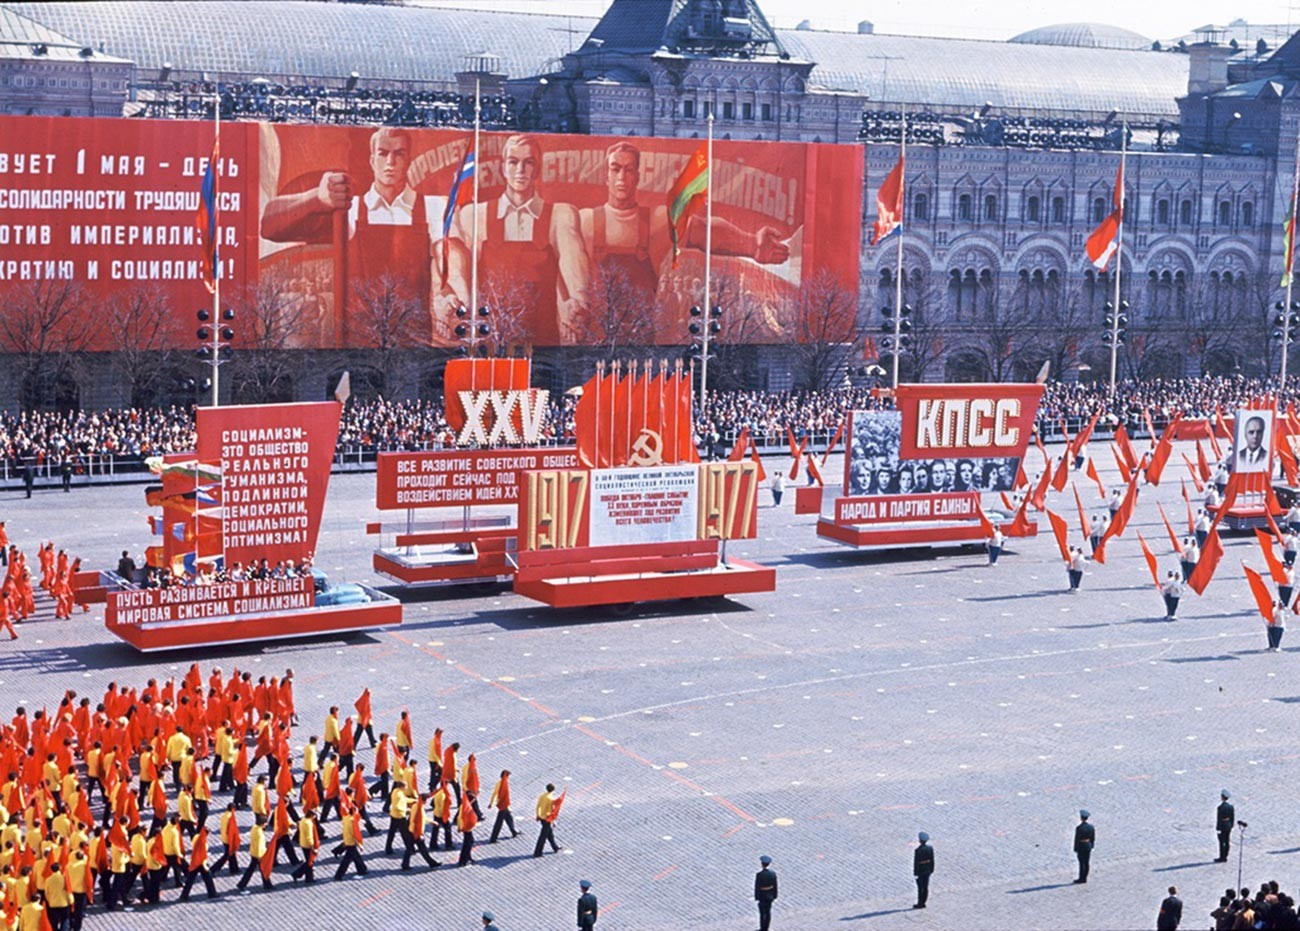 May 1 parade on Red Square, 1976